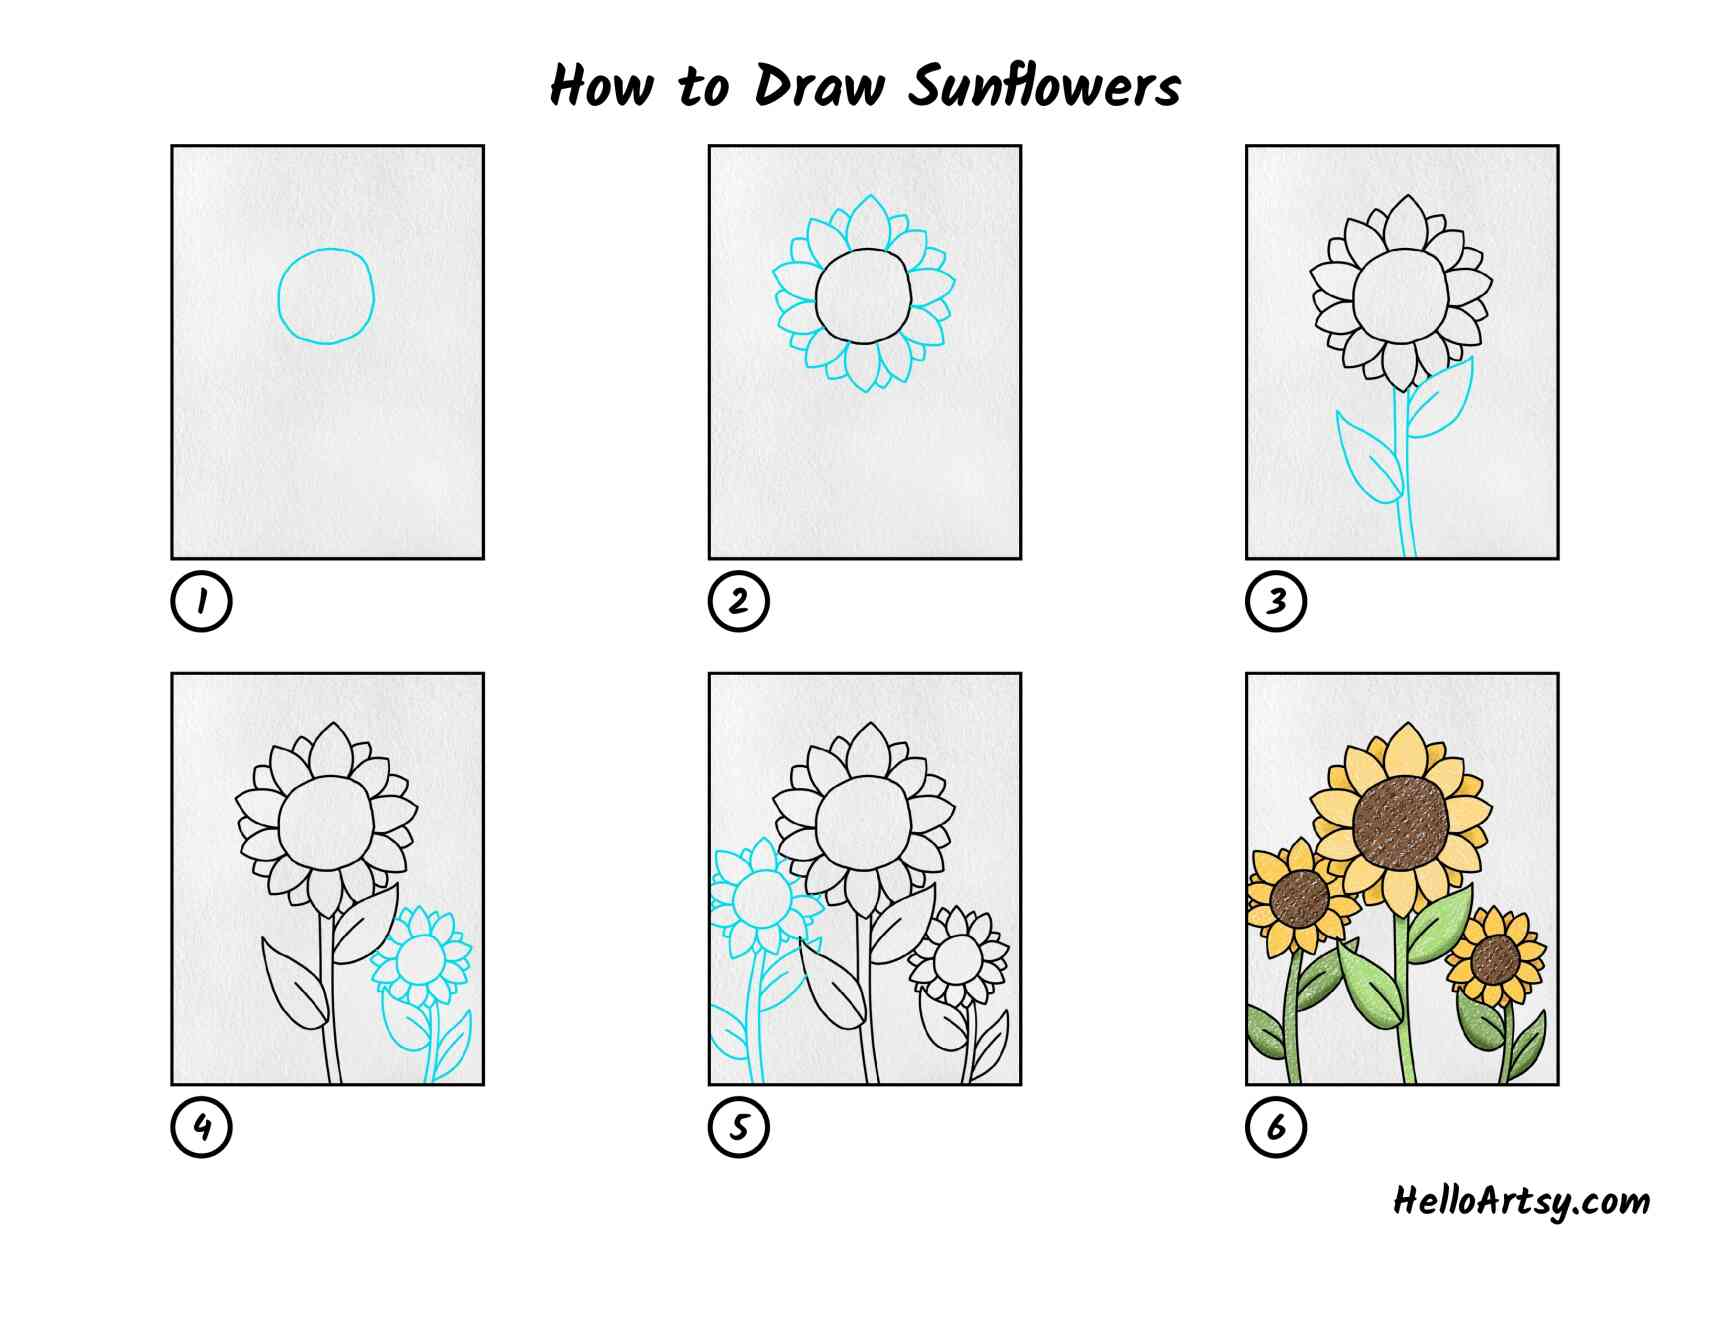 How To Draw Sunflowers: All Steps